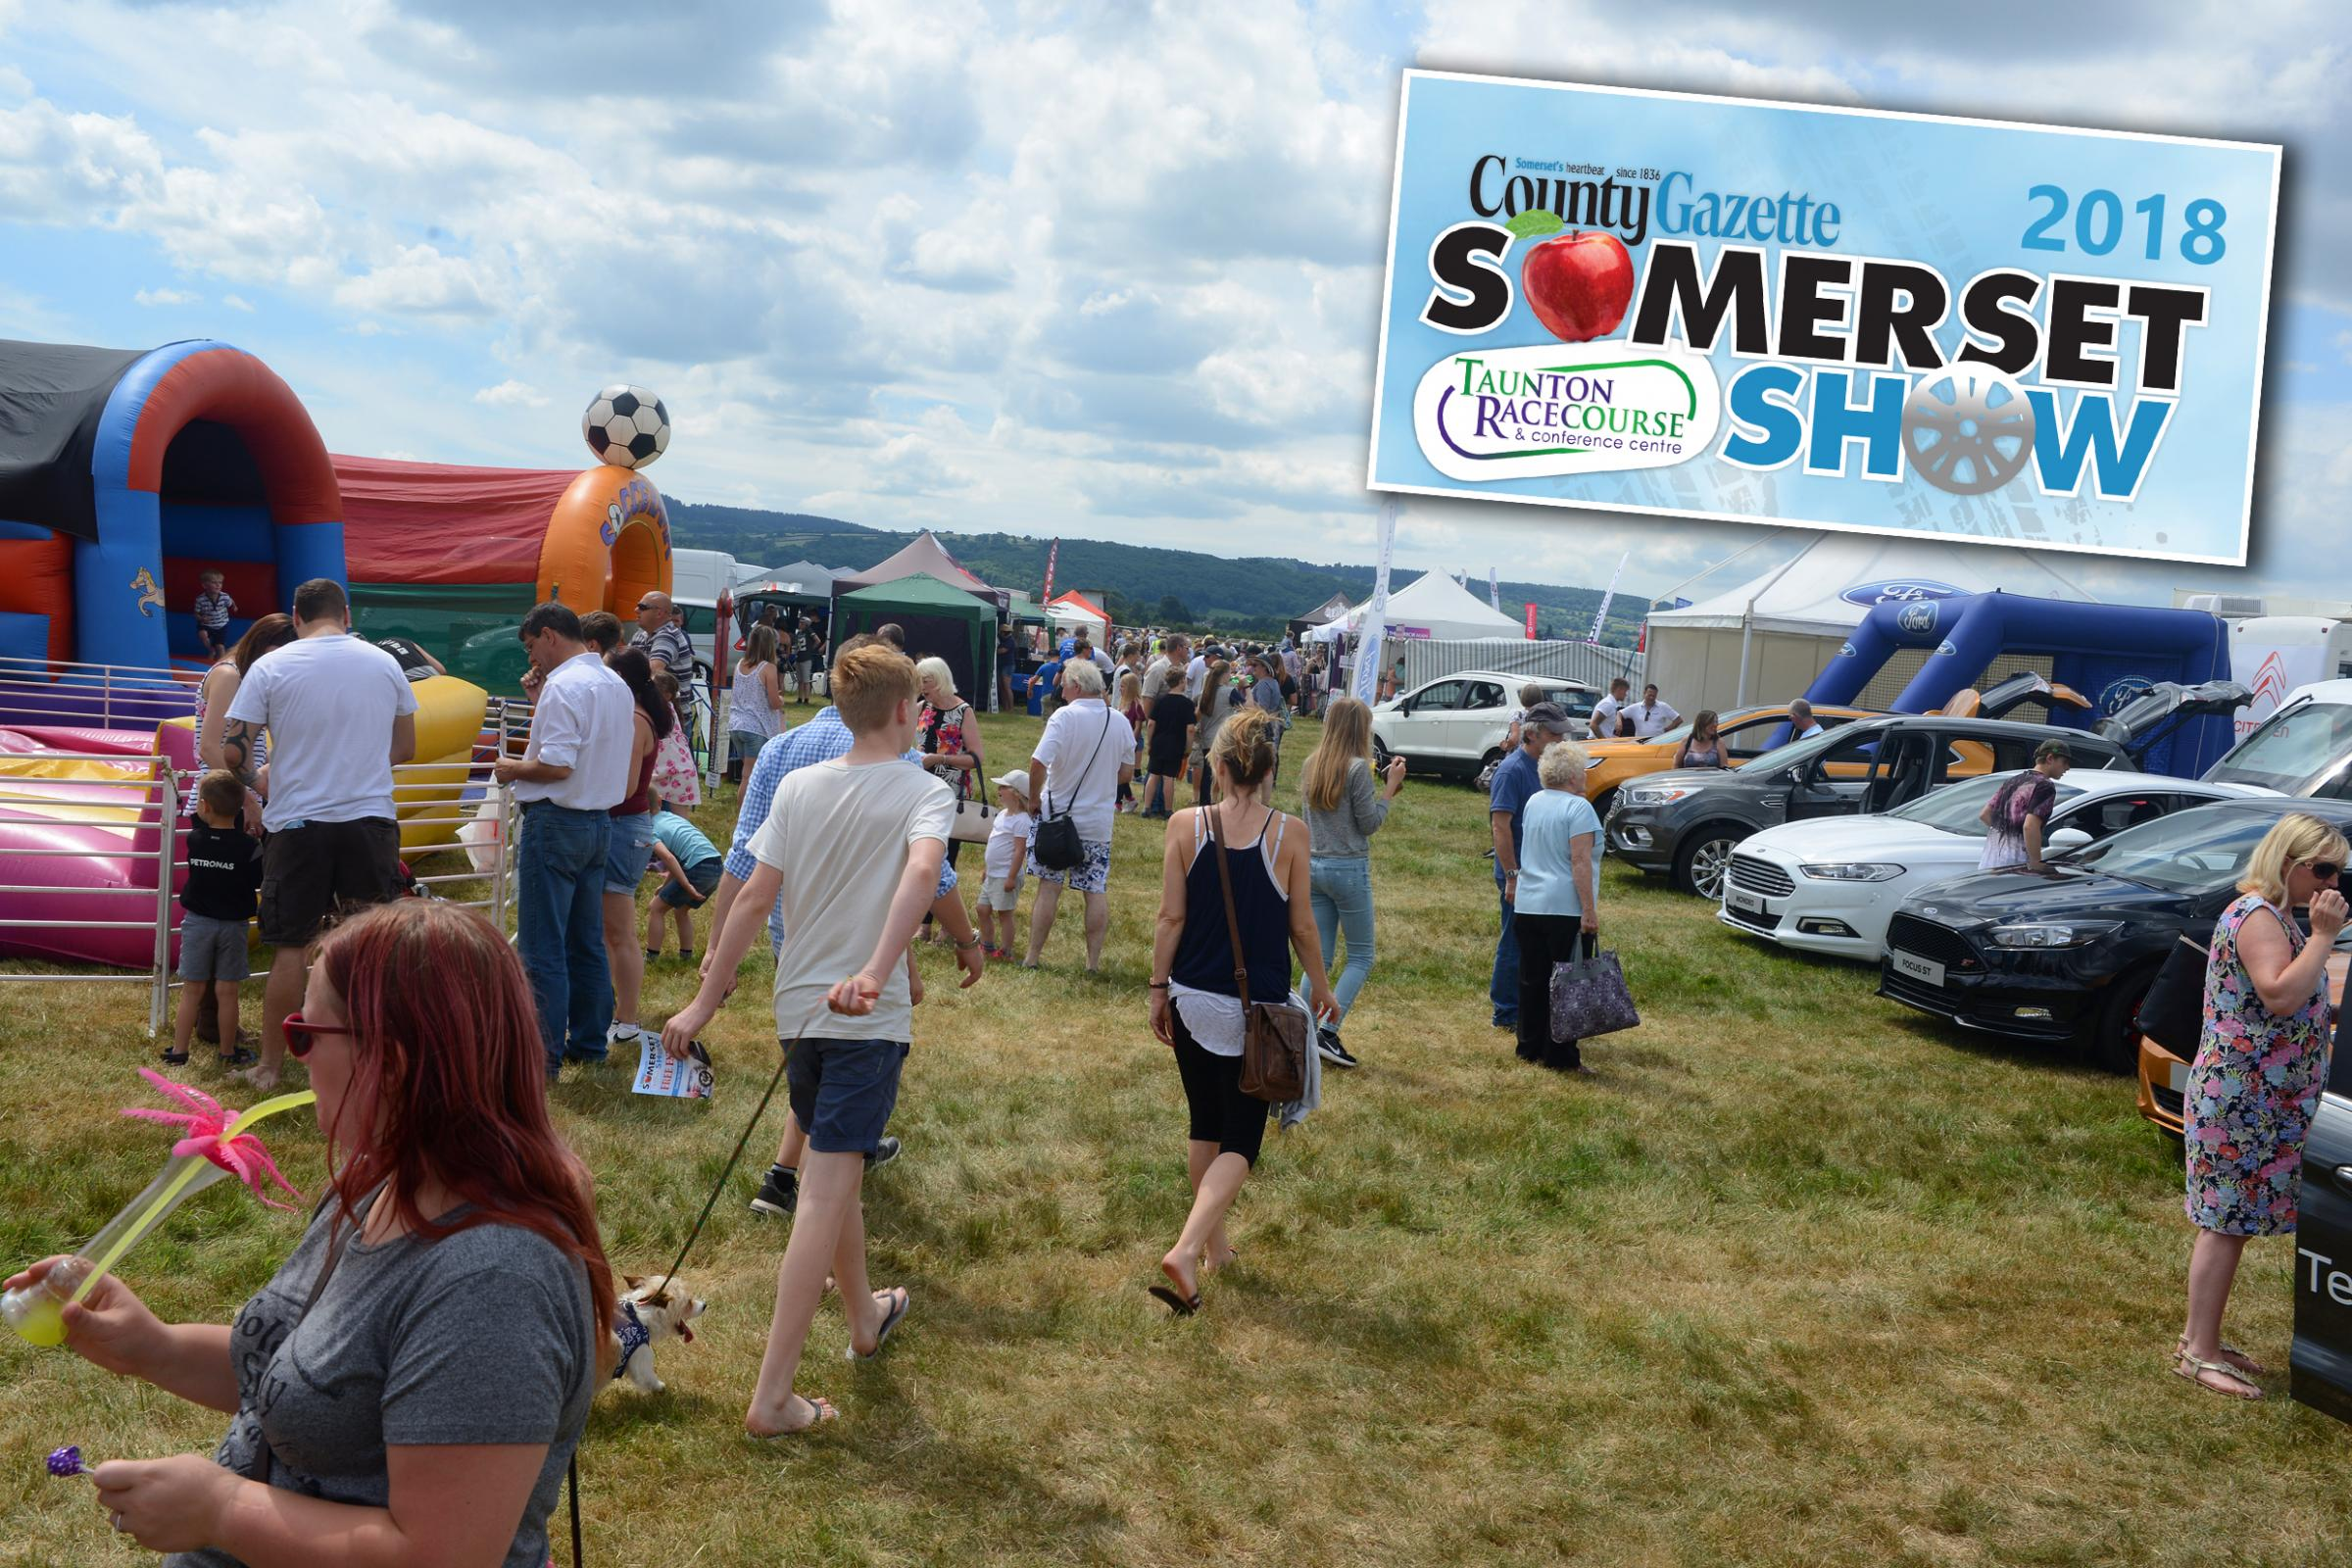 FREE FAMILY DAY: The County Gazette Somerset Show